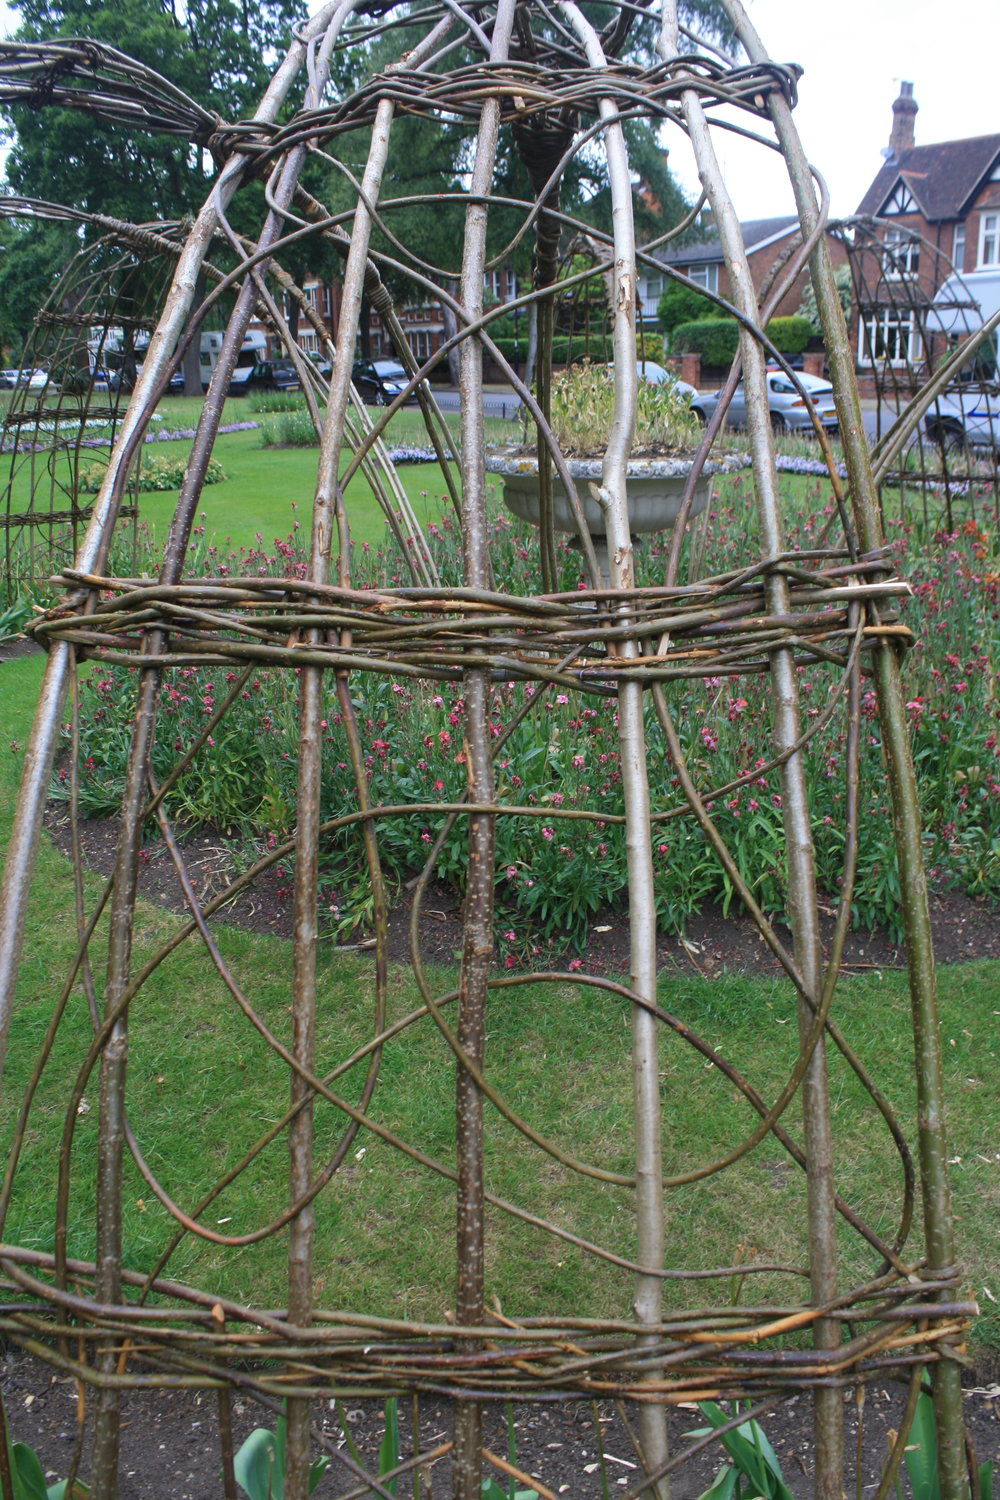 Statement willow structures